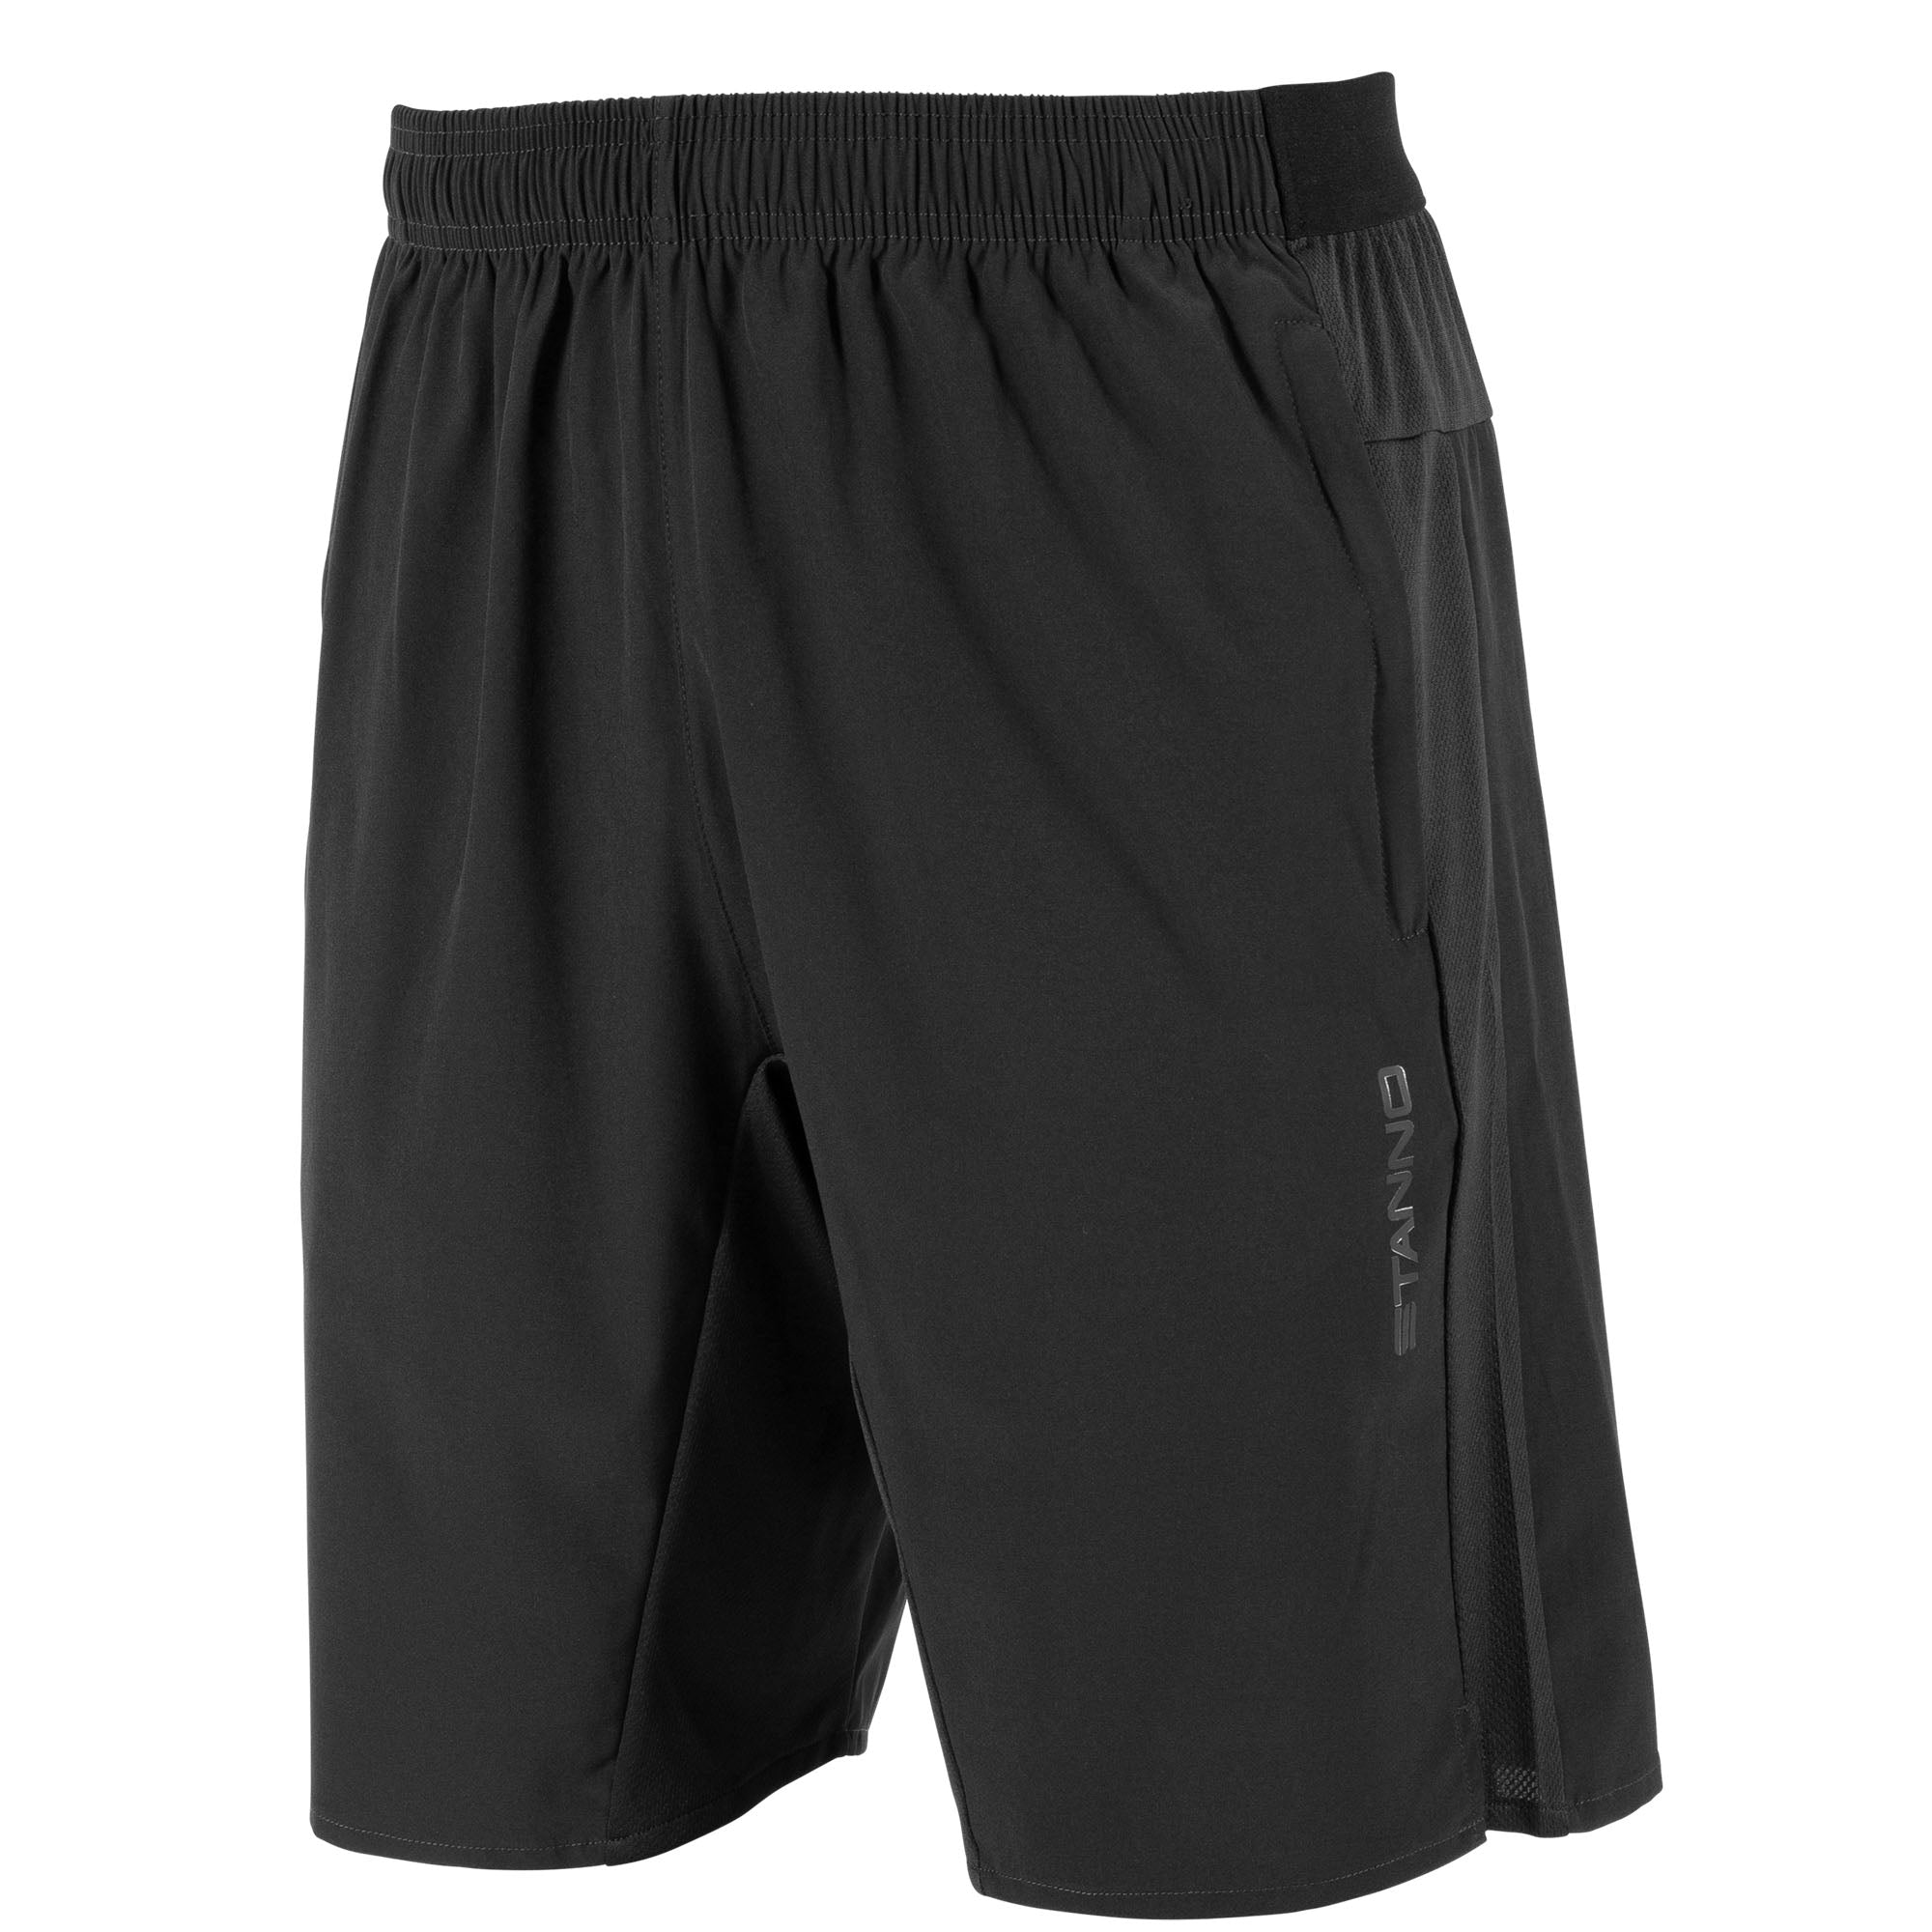 Front view of Stanno Functionals Woven Short in black with side mesh panels and subtle Stanno text logo on left leg.